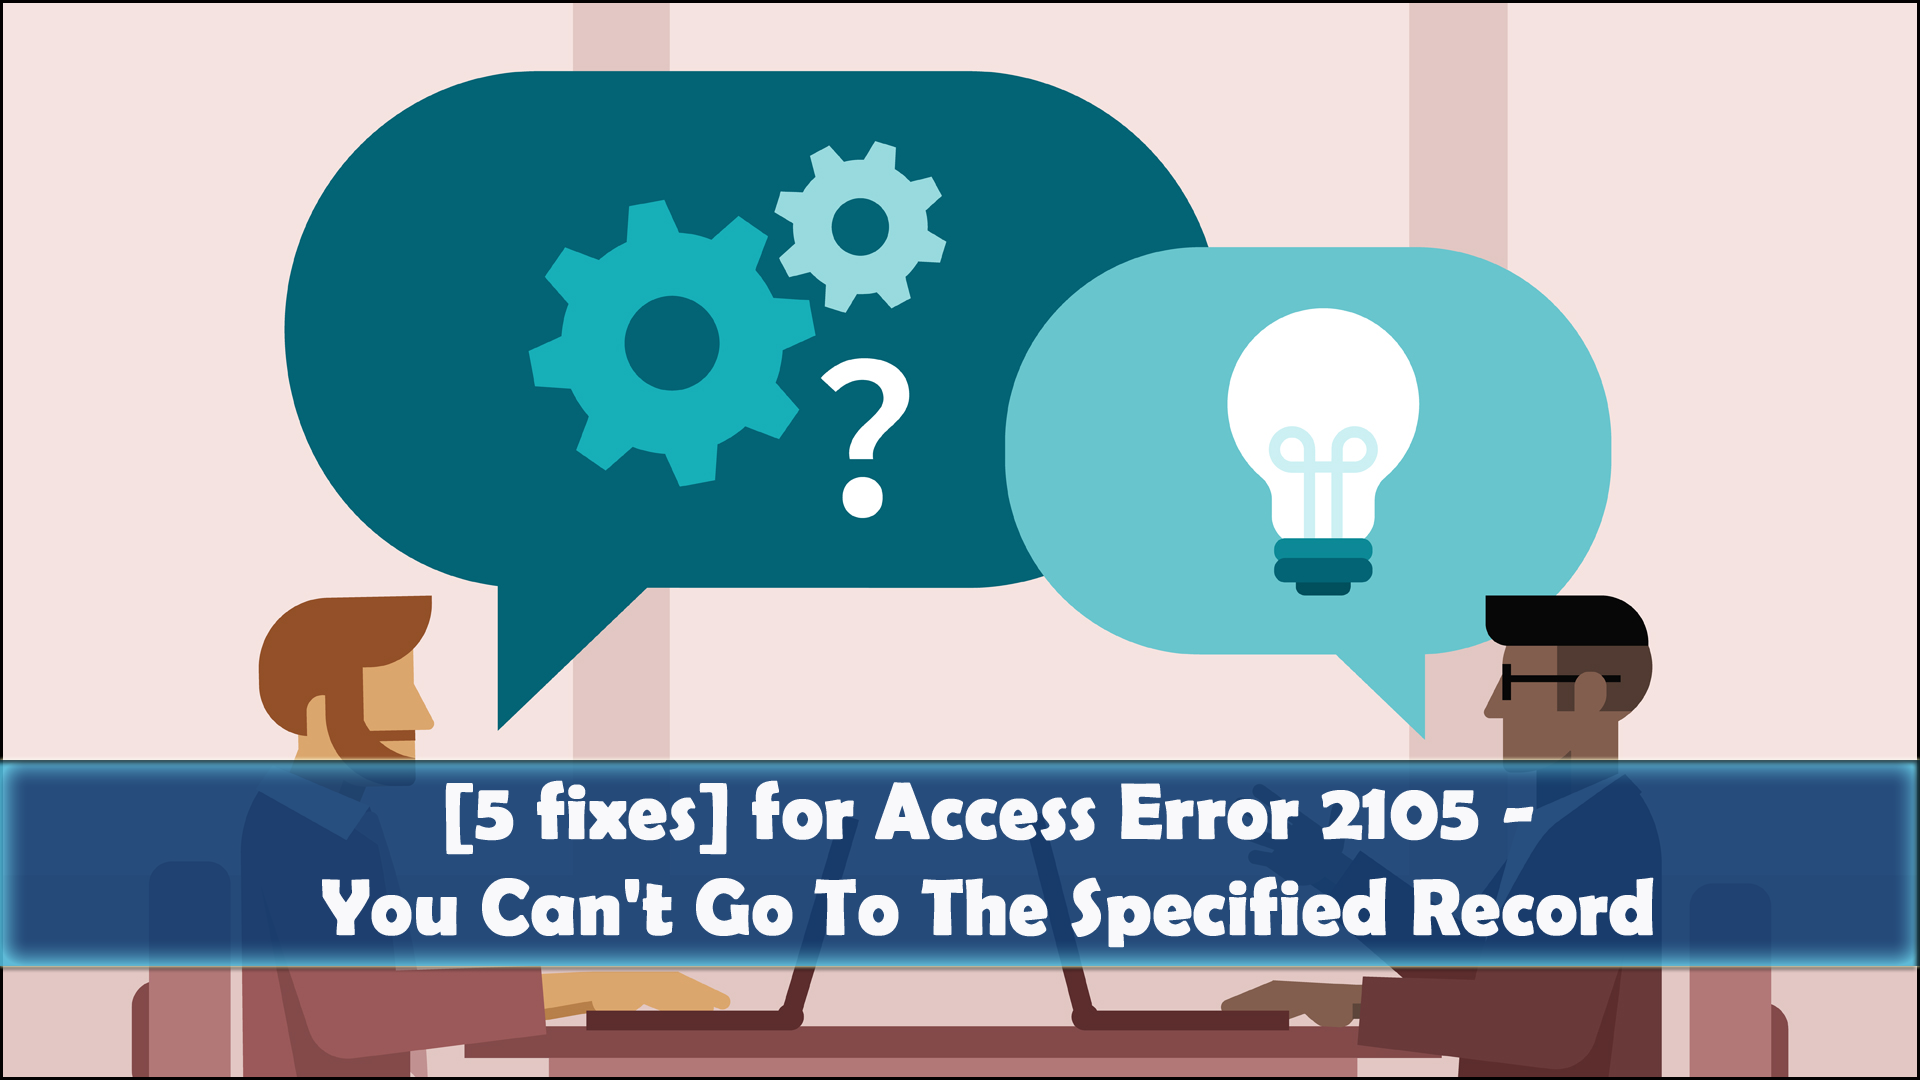 Access Error 2105 -You Can't Go To The Specified Record